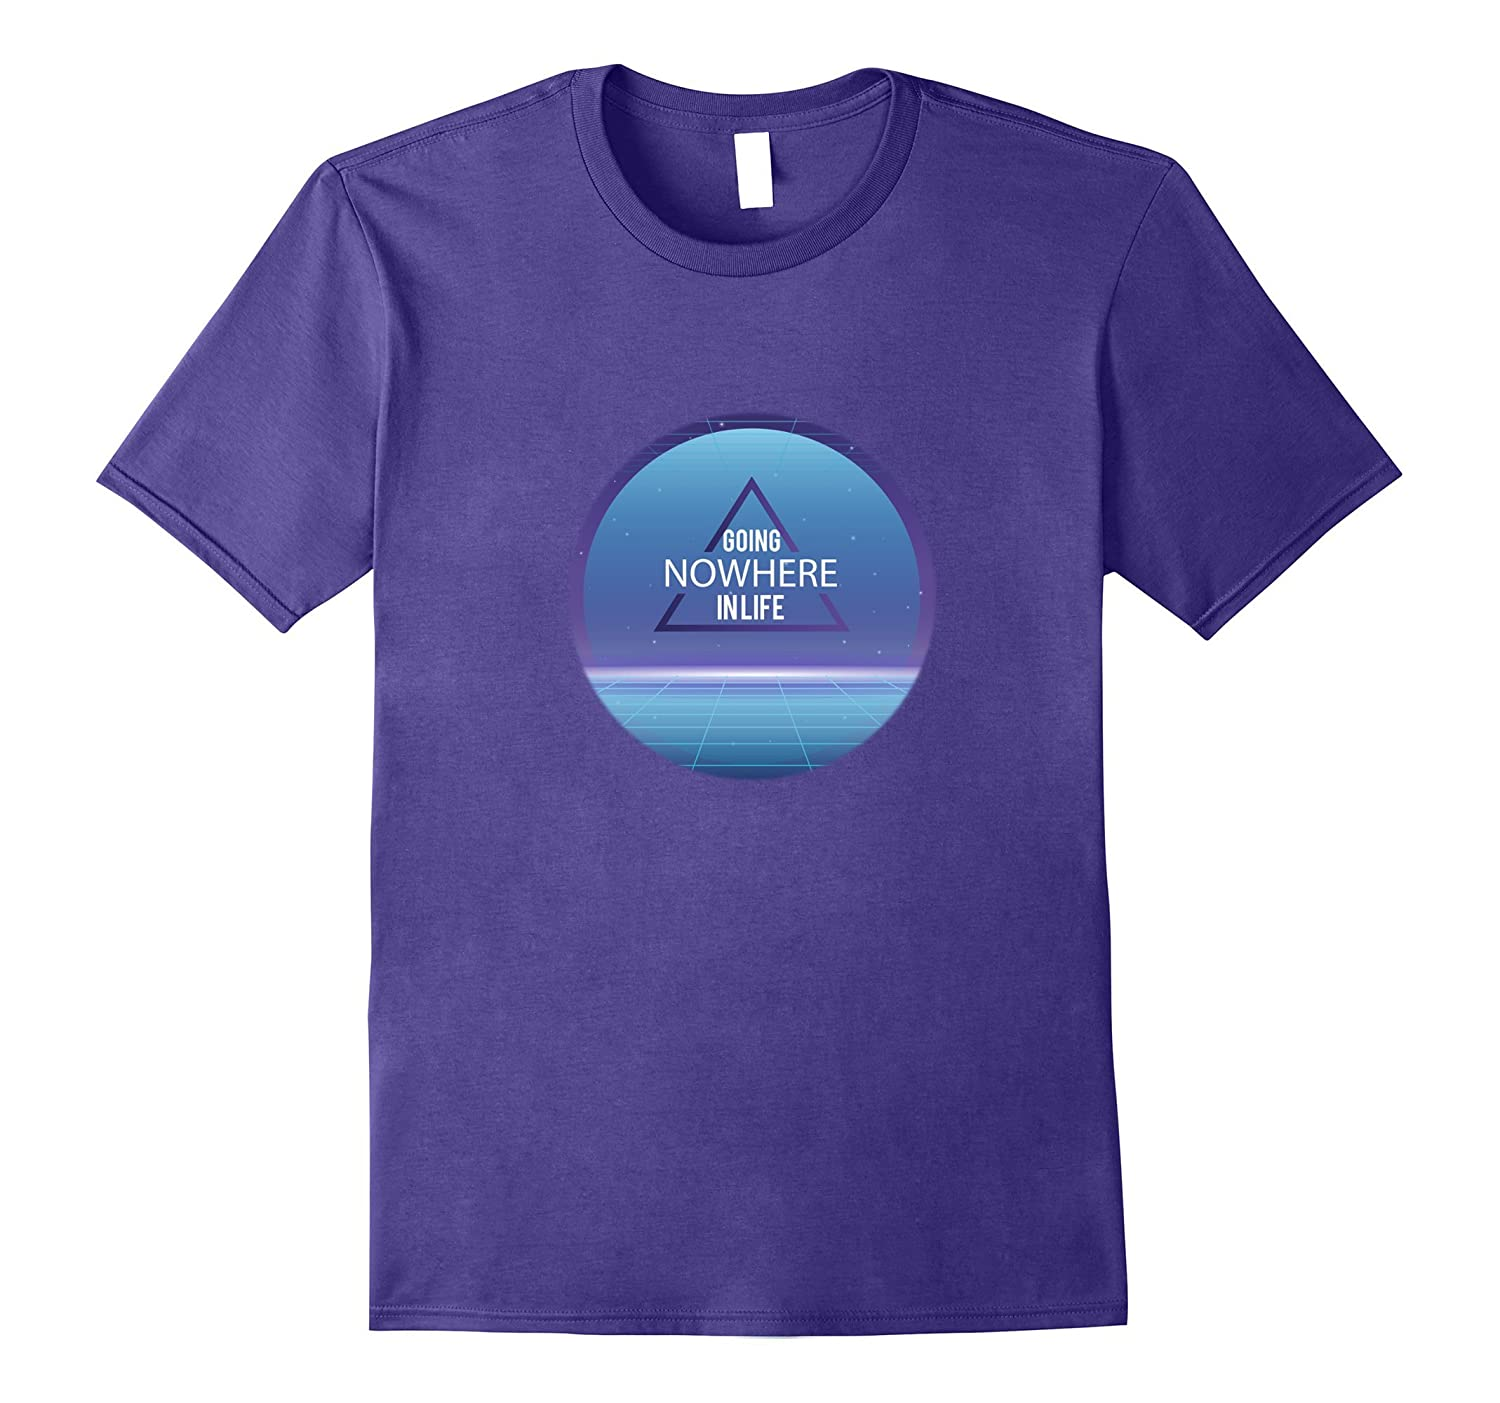 Going nowhere in life - Vaporwave Aesthetic Triangle Tshirt-TH